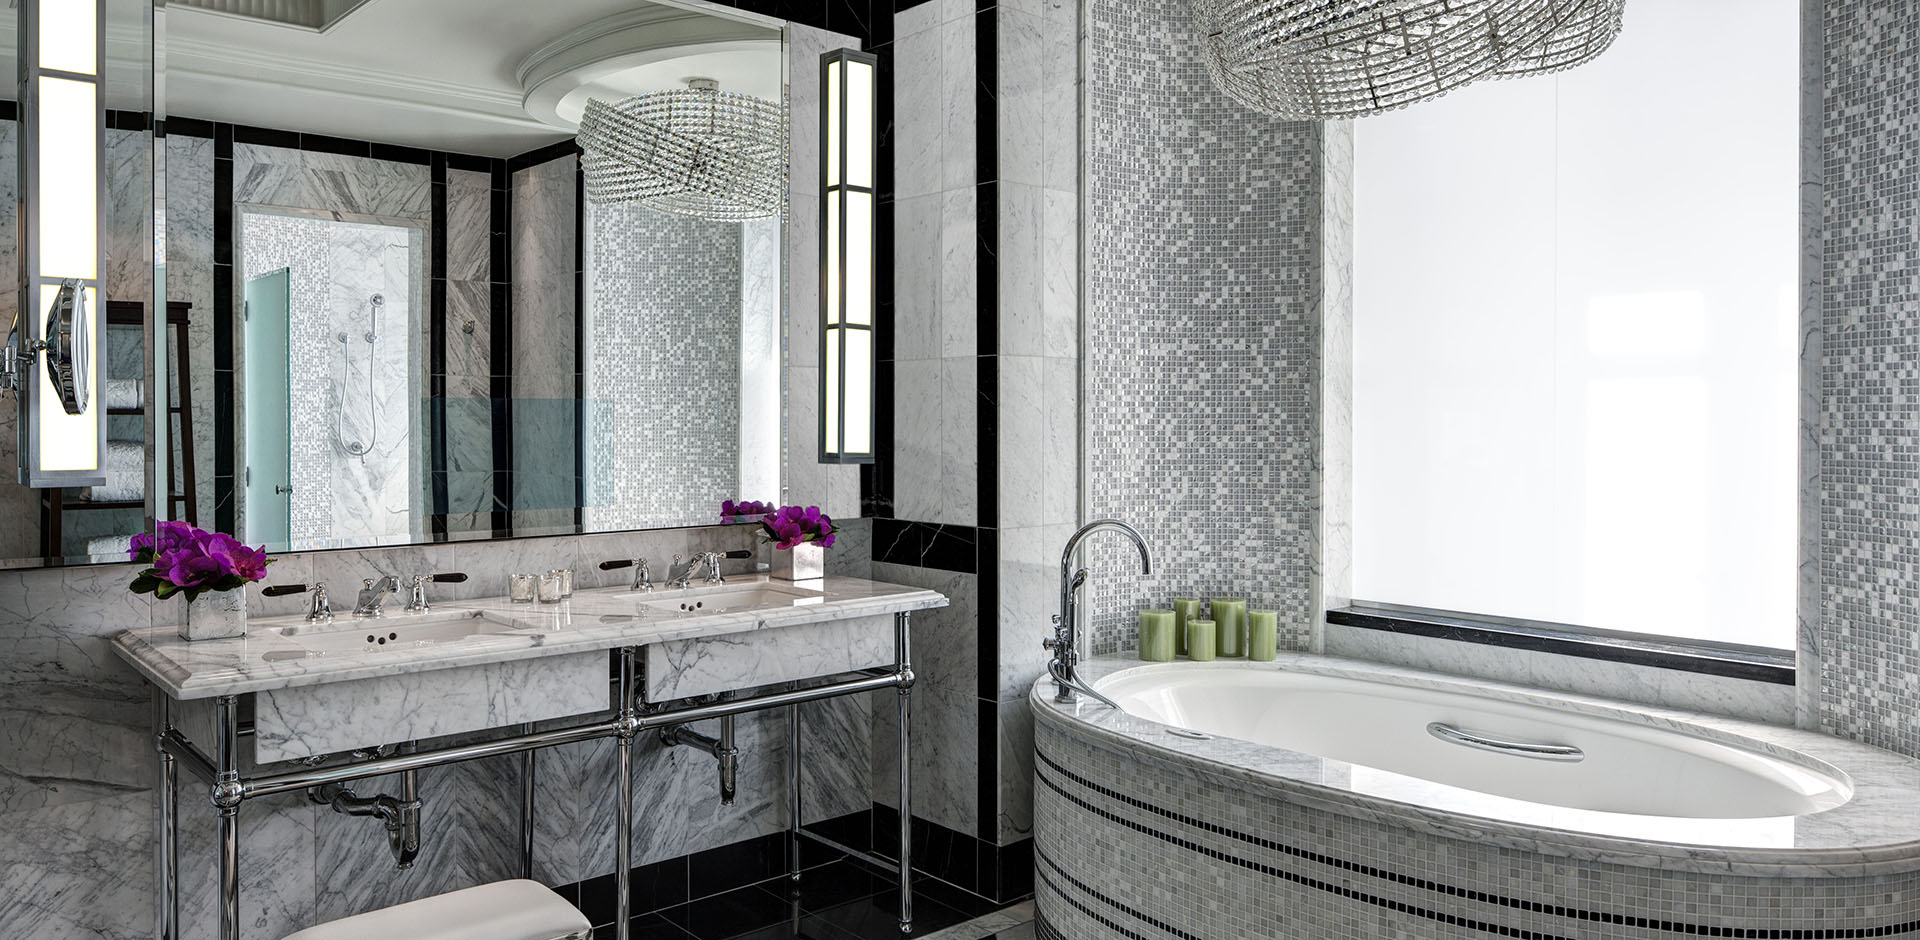 St Regis, New York - Presidential Suite bathroom.jpg.